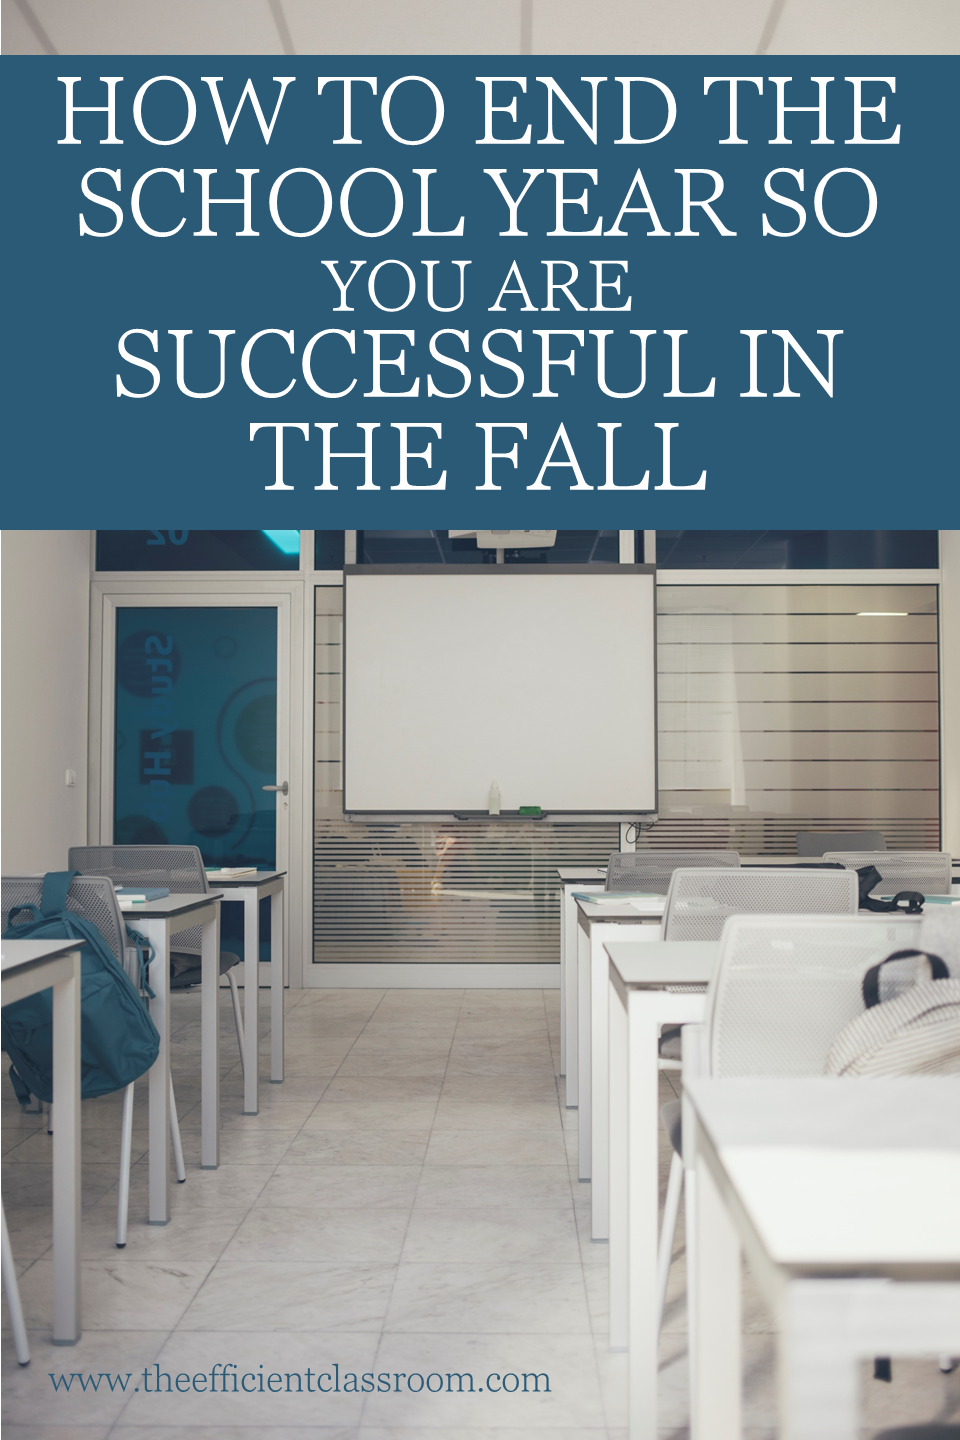 End of Year Ideas in Preparation for Successful Fall